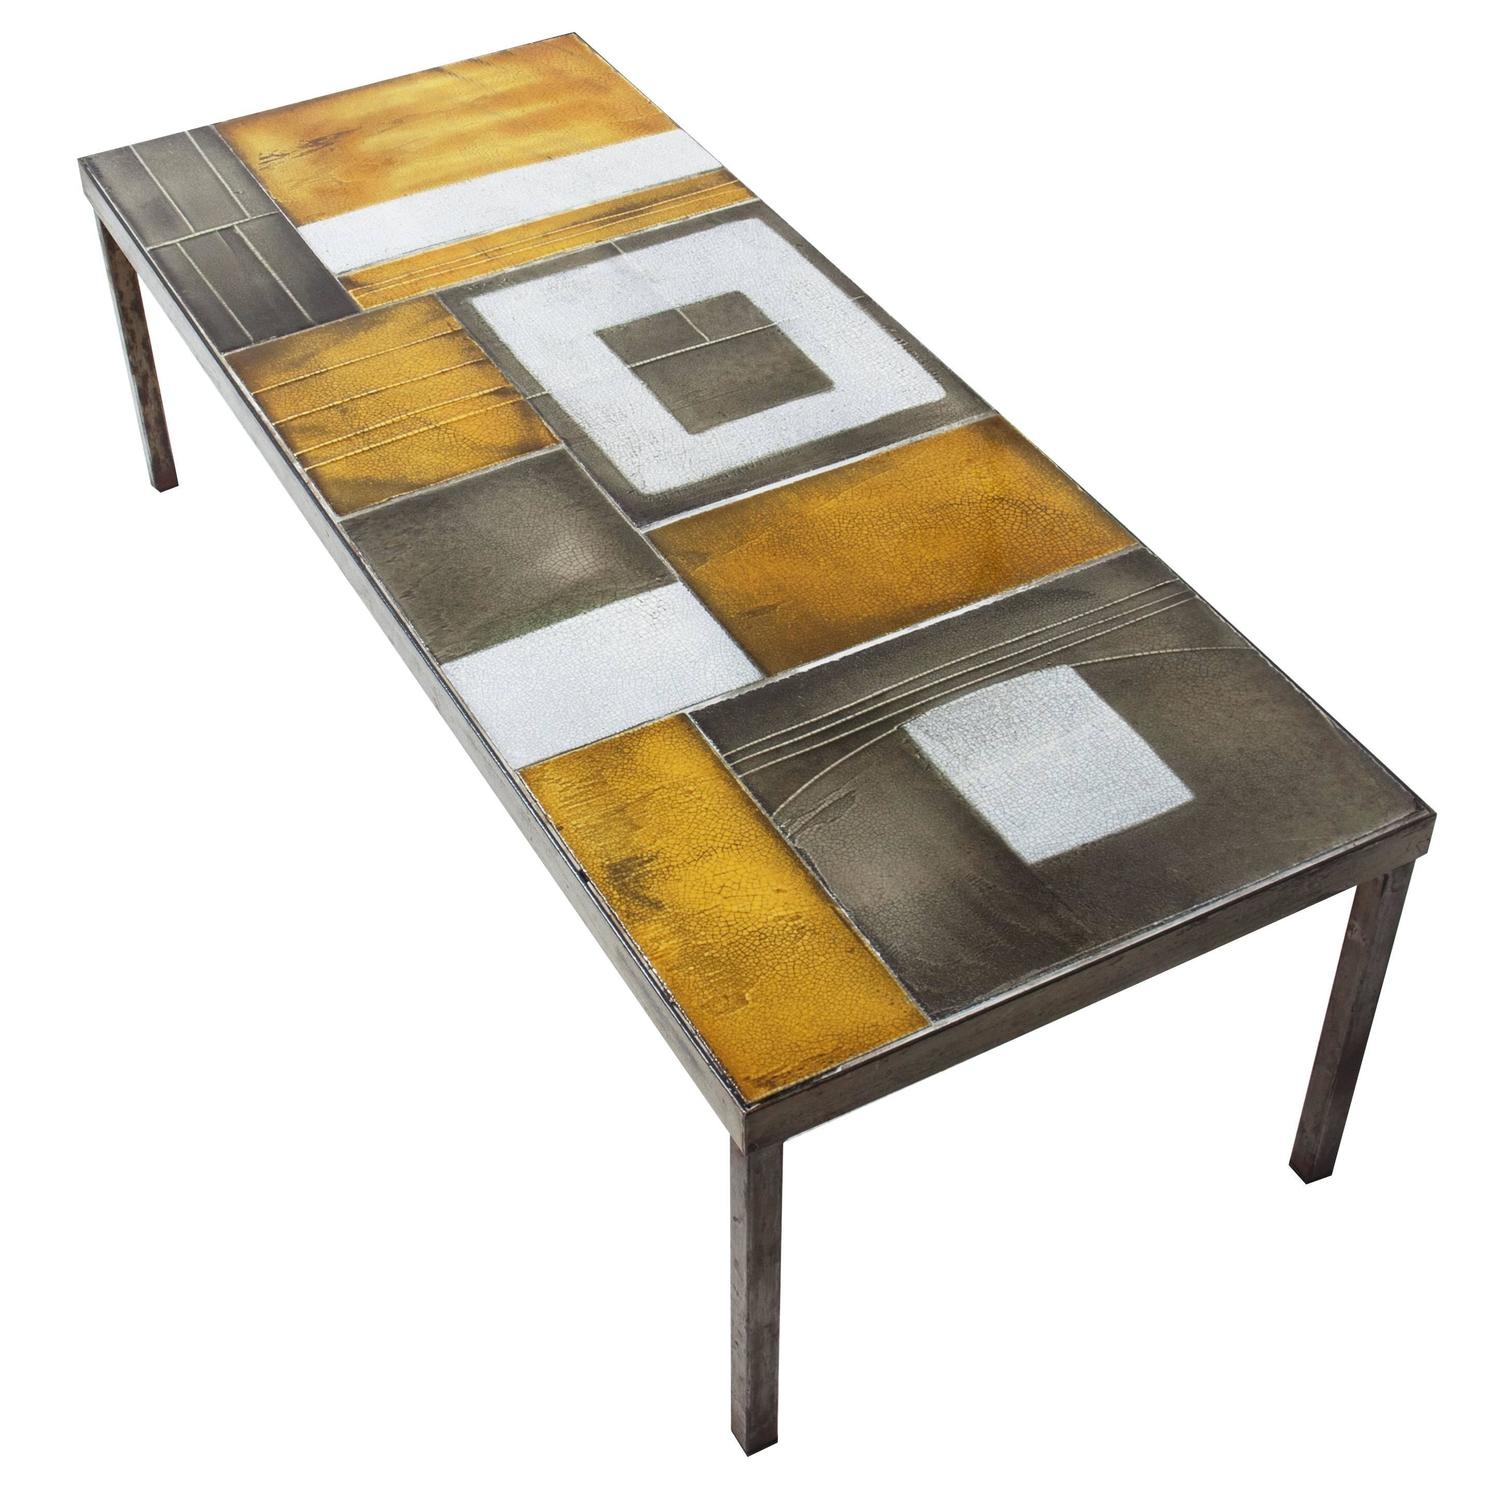 roger capron ceramic coffee table 1960s at 1stdibs. Black Bedroom Furniture Sets. Home Design Ideas